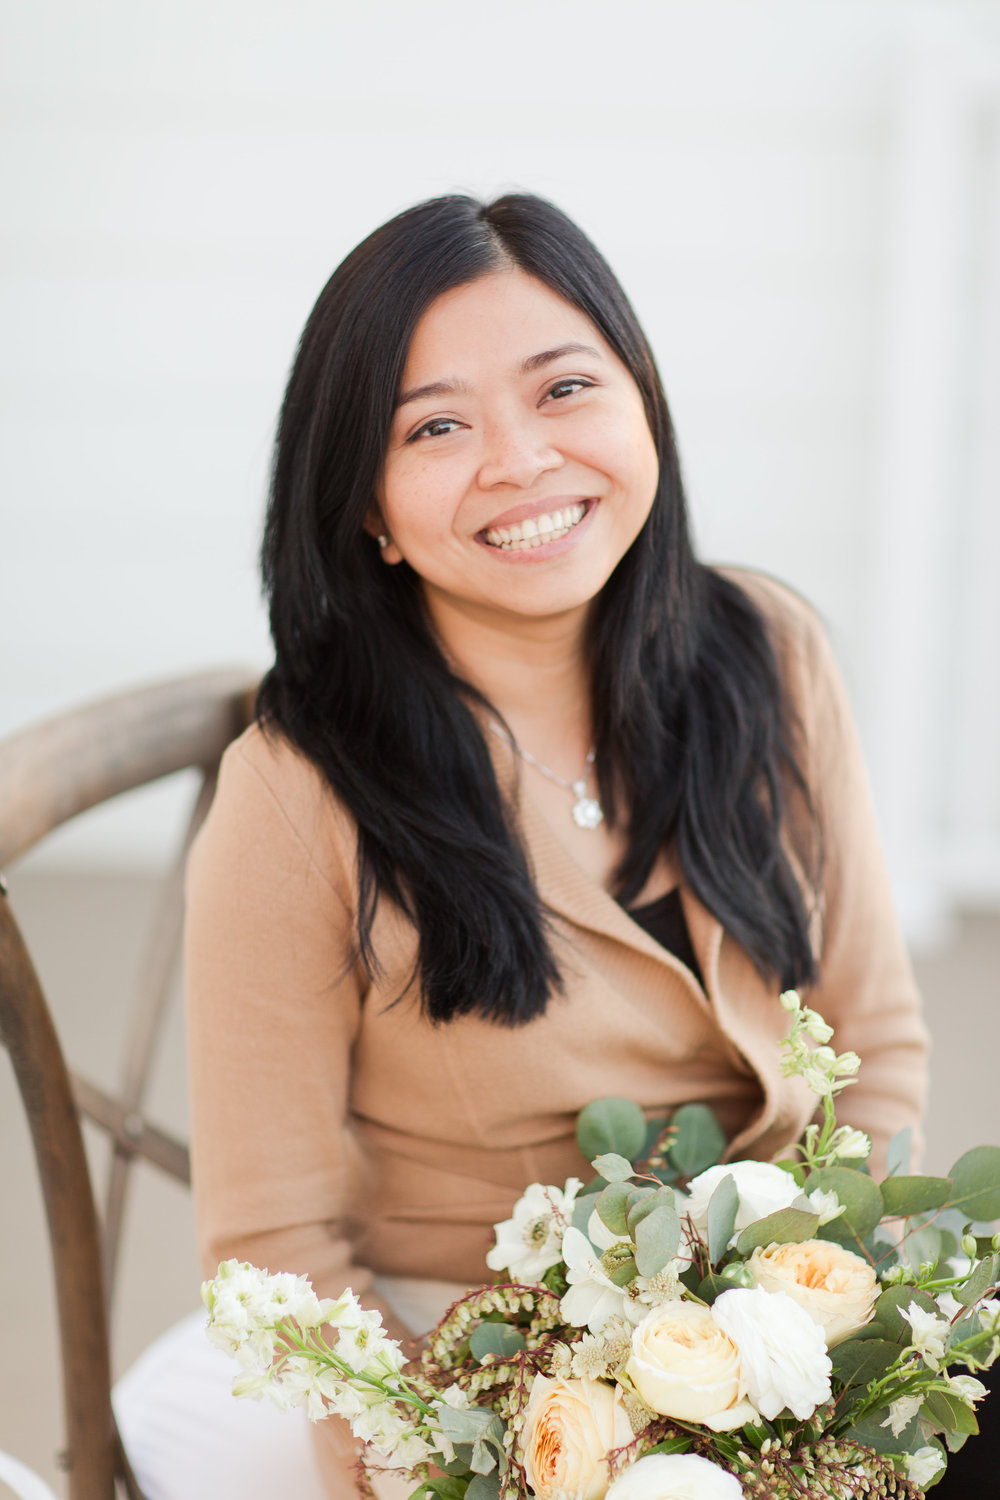 yen sadek, florist, wedding florist, virginia florist